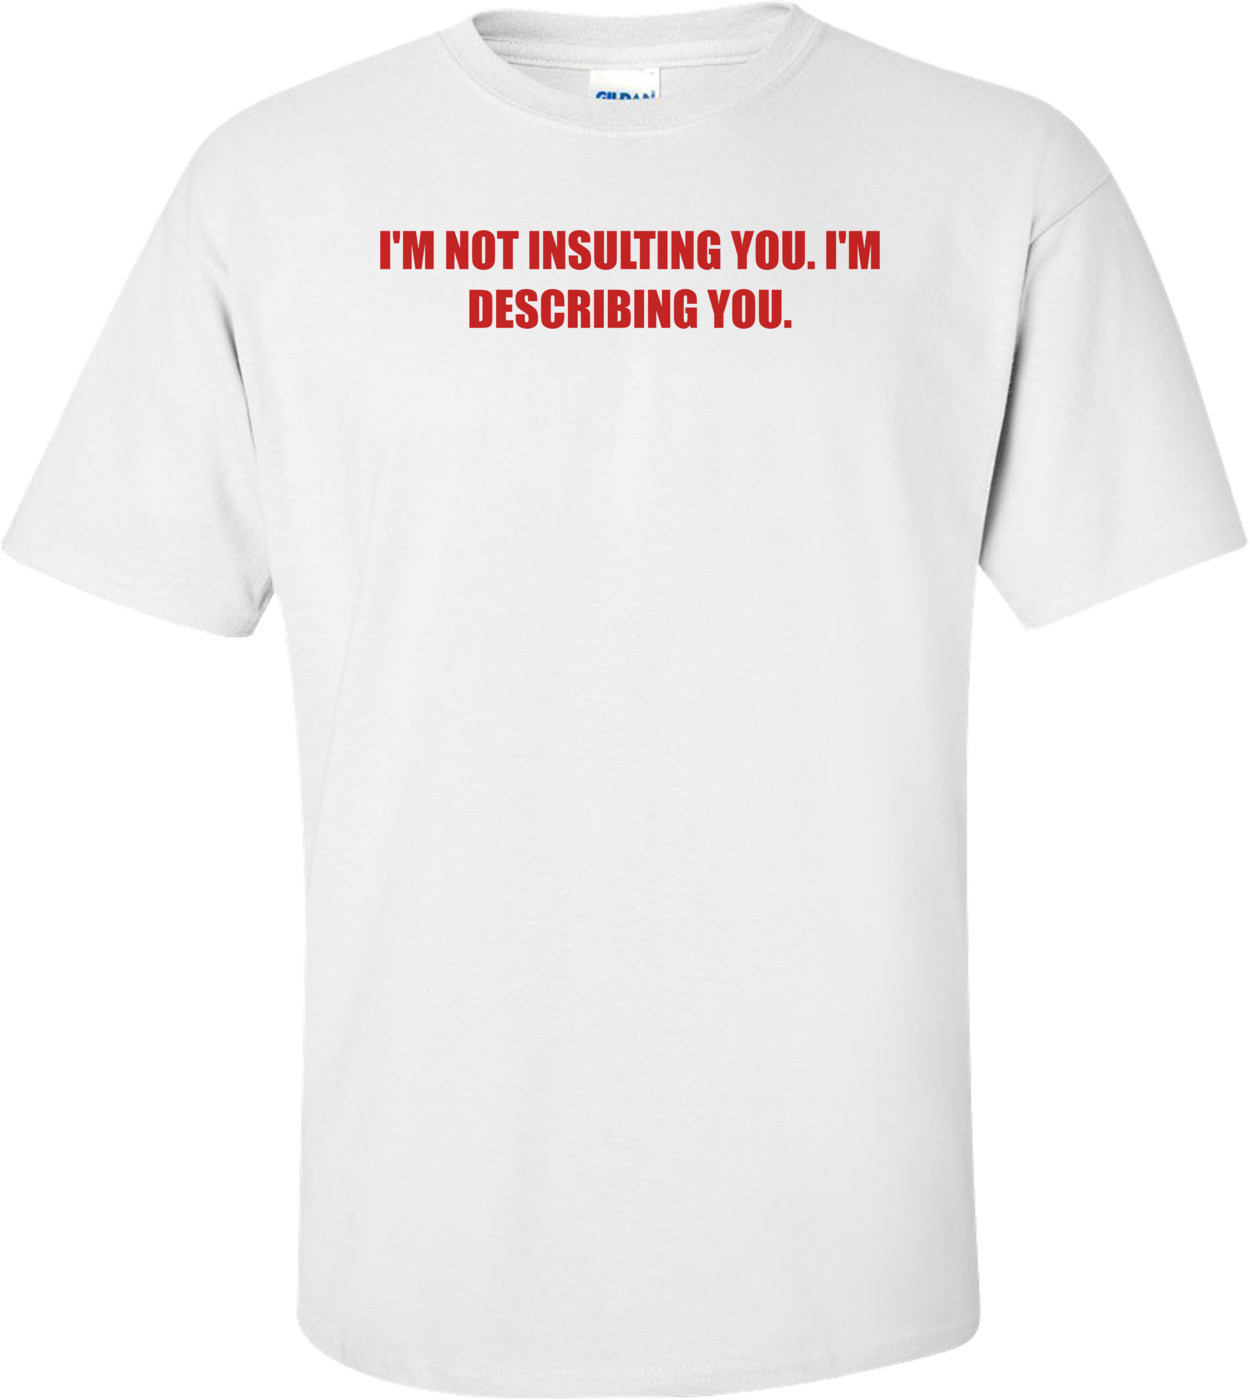 I'M NOT INSULTING YOU. I'M DESCRIBING YOU. Shirt